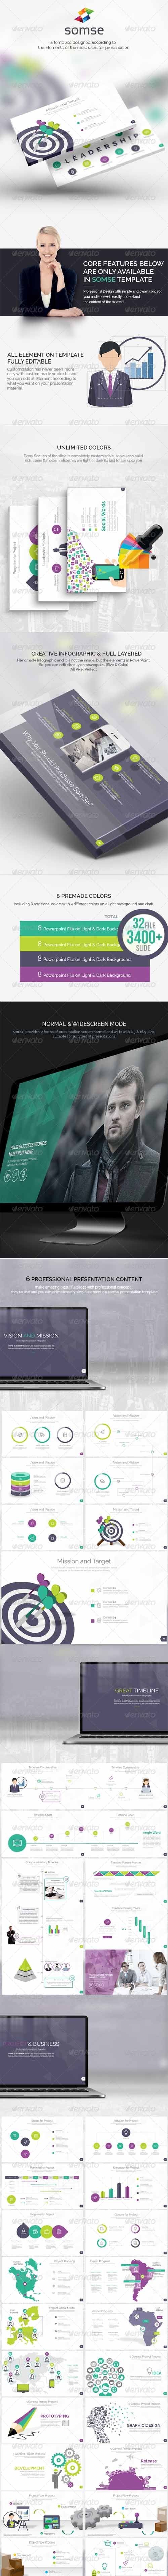 GR - Somse - All in One Powerpoint Template 8414563